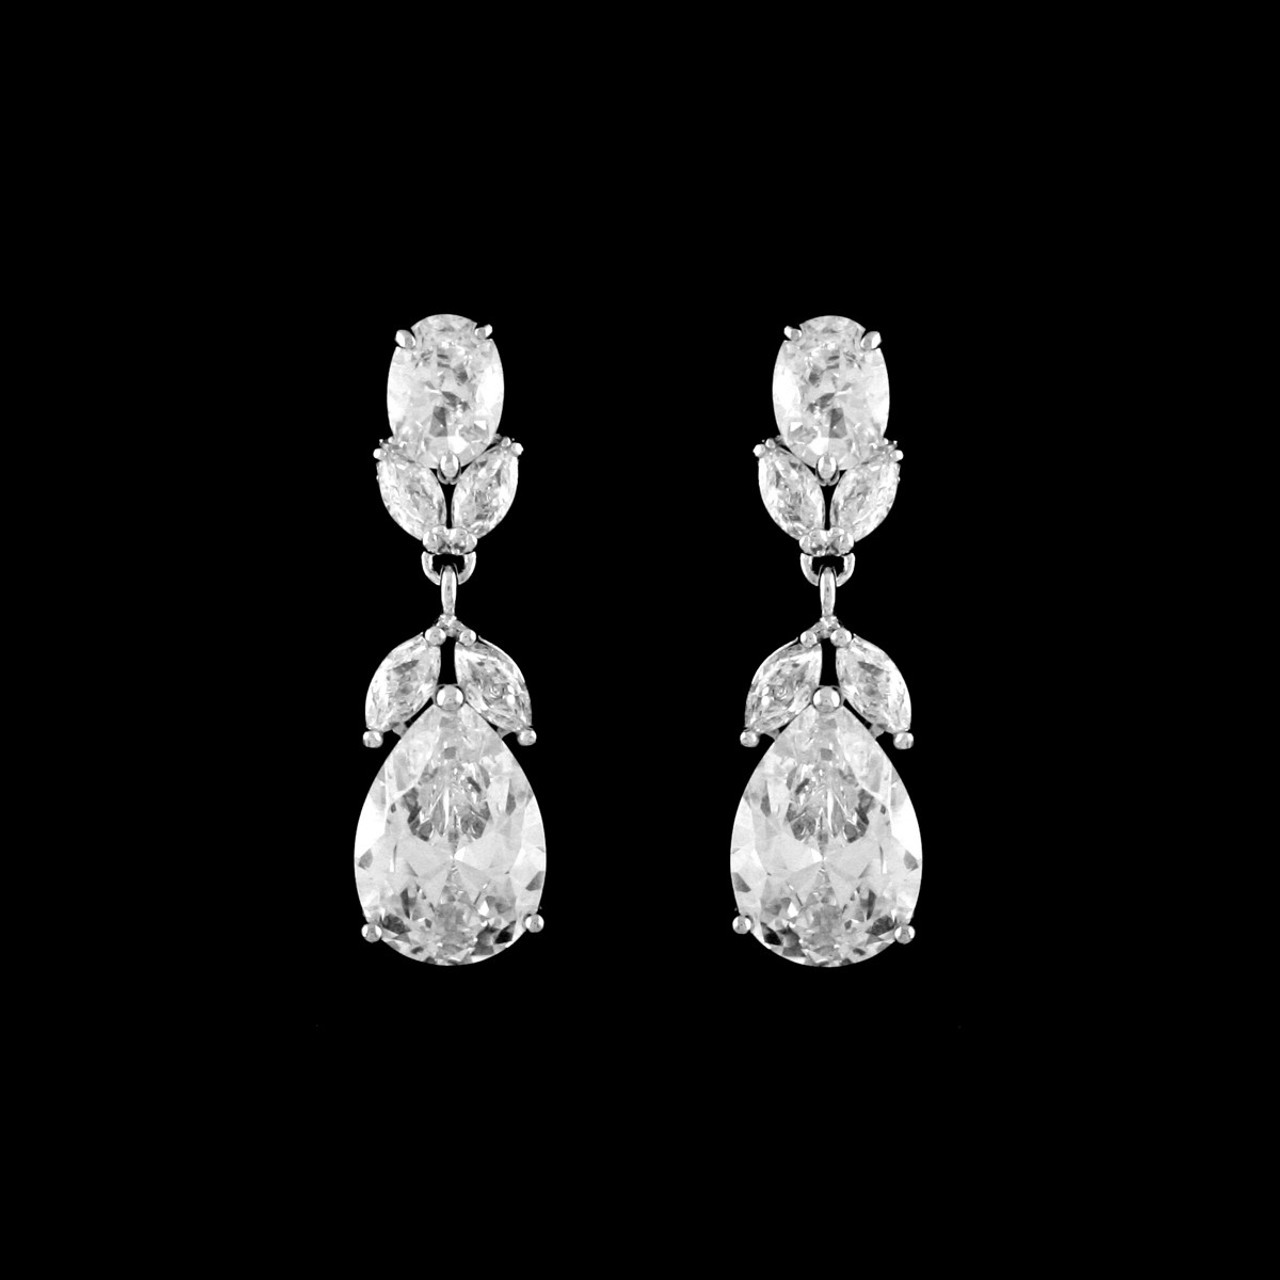 Formal Cubic Zirconia Earrings for Bridesmaids and Brides - #206